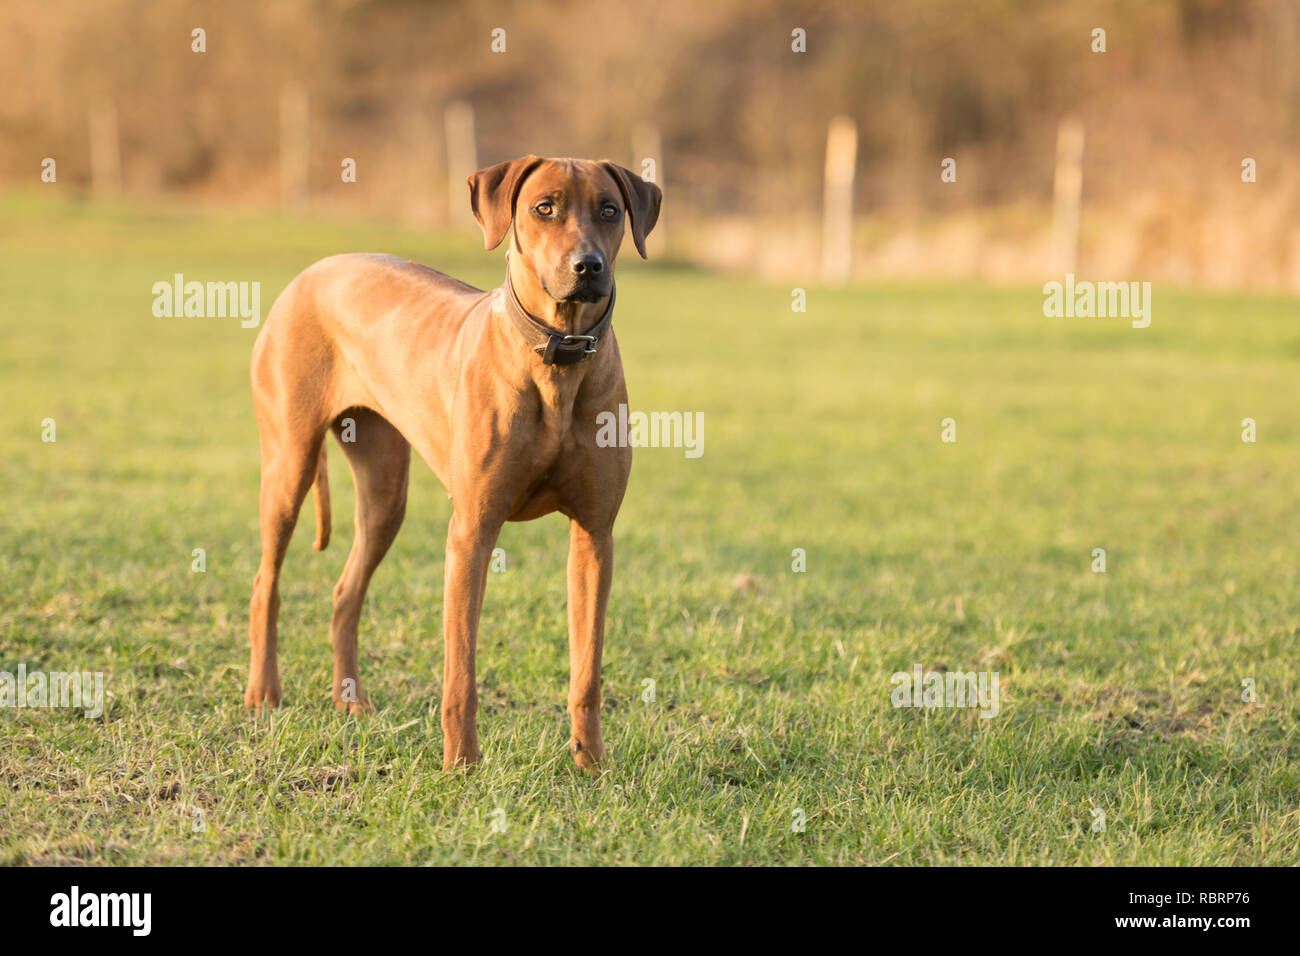 Proud Rhodesian Ridgeback dog is standing on a green meadow against blurred background an is looking forward - Stock Image